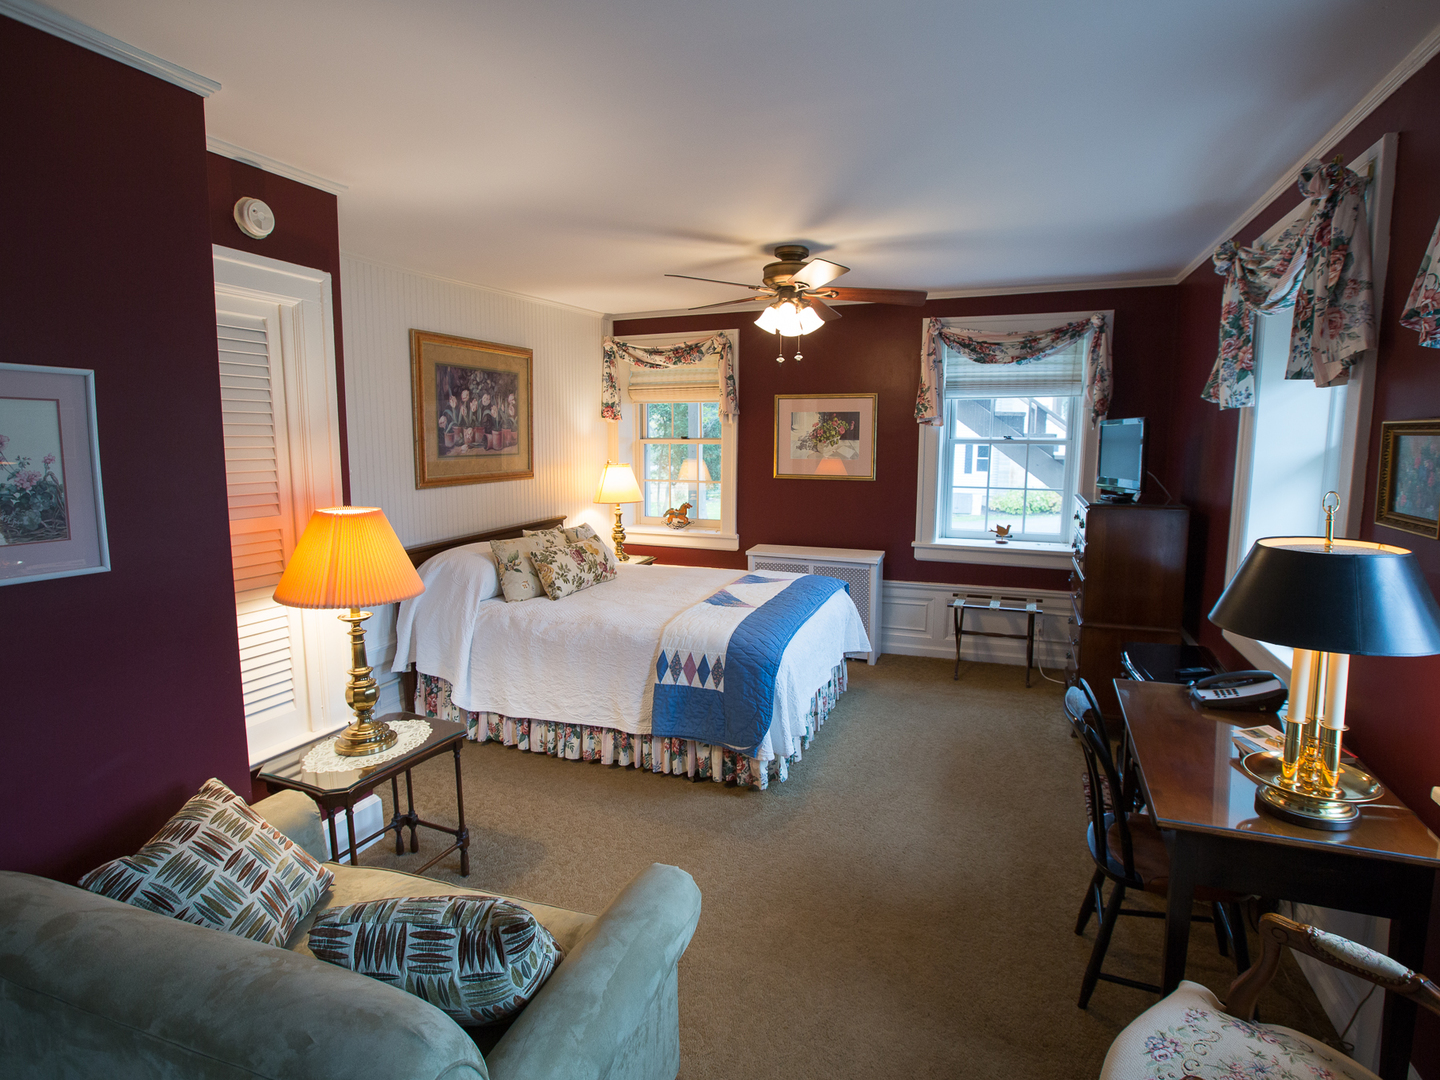 A living room filled with furniture and a large window at Genesee Country Inn Bed and Breakfast.